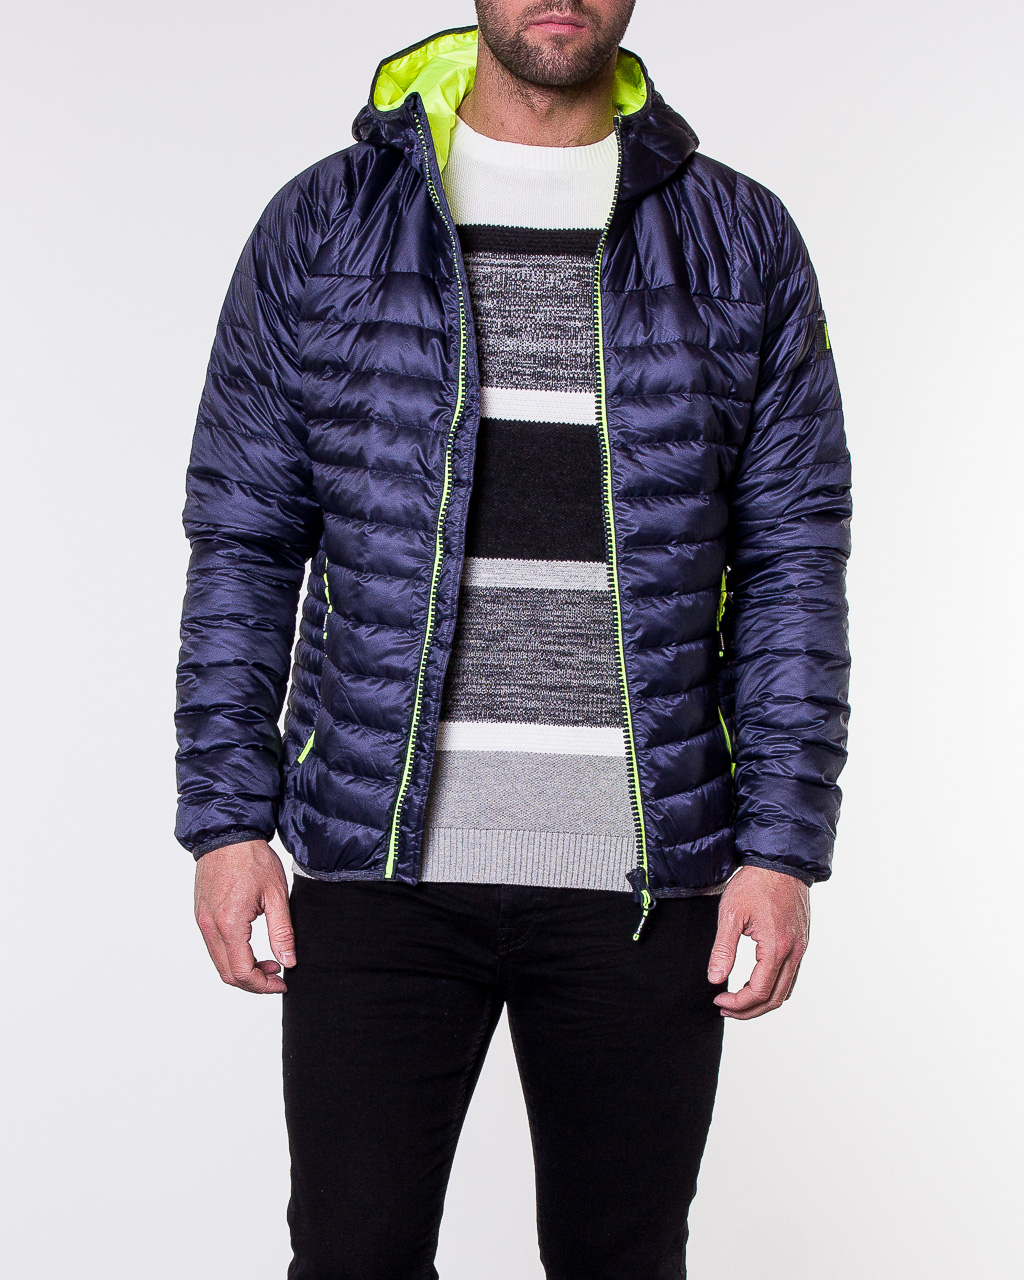 8c002df0e631 ... Chromatic Core Down Jacket Navy Marl. Do you need help choosing the  size or color?